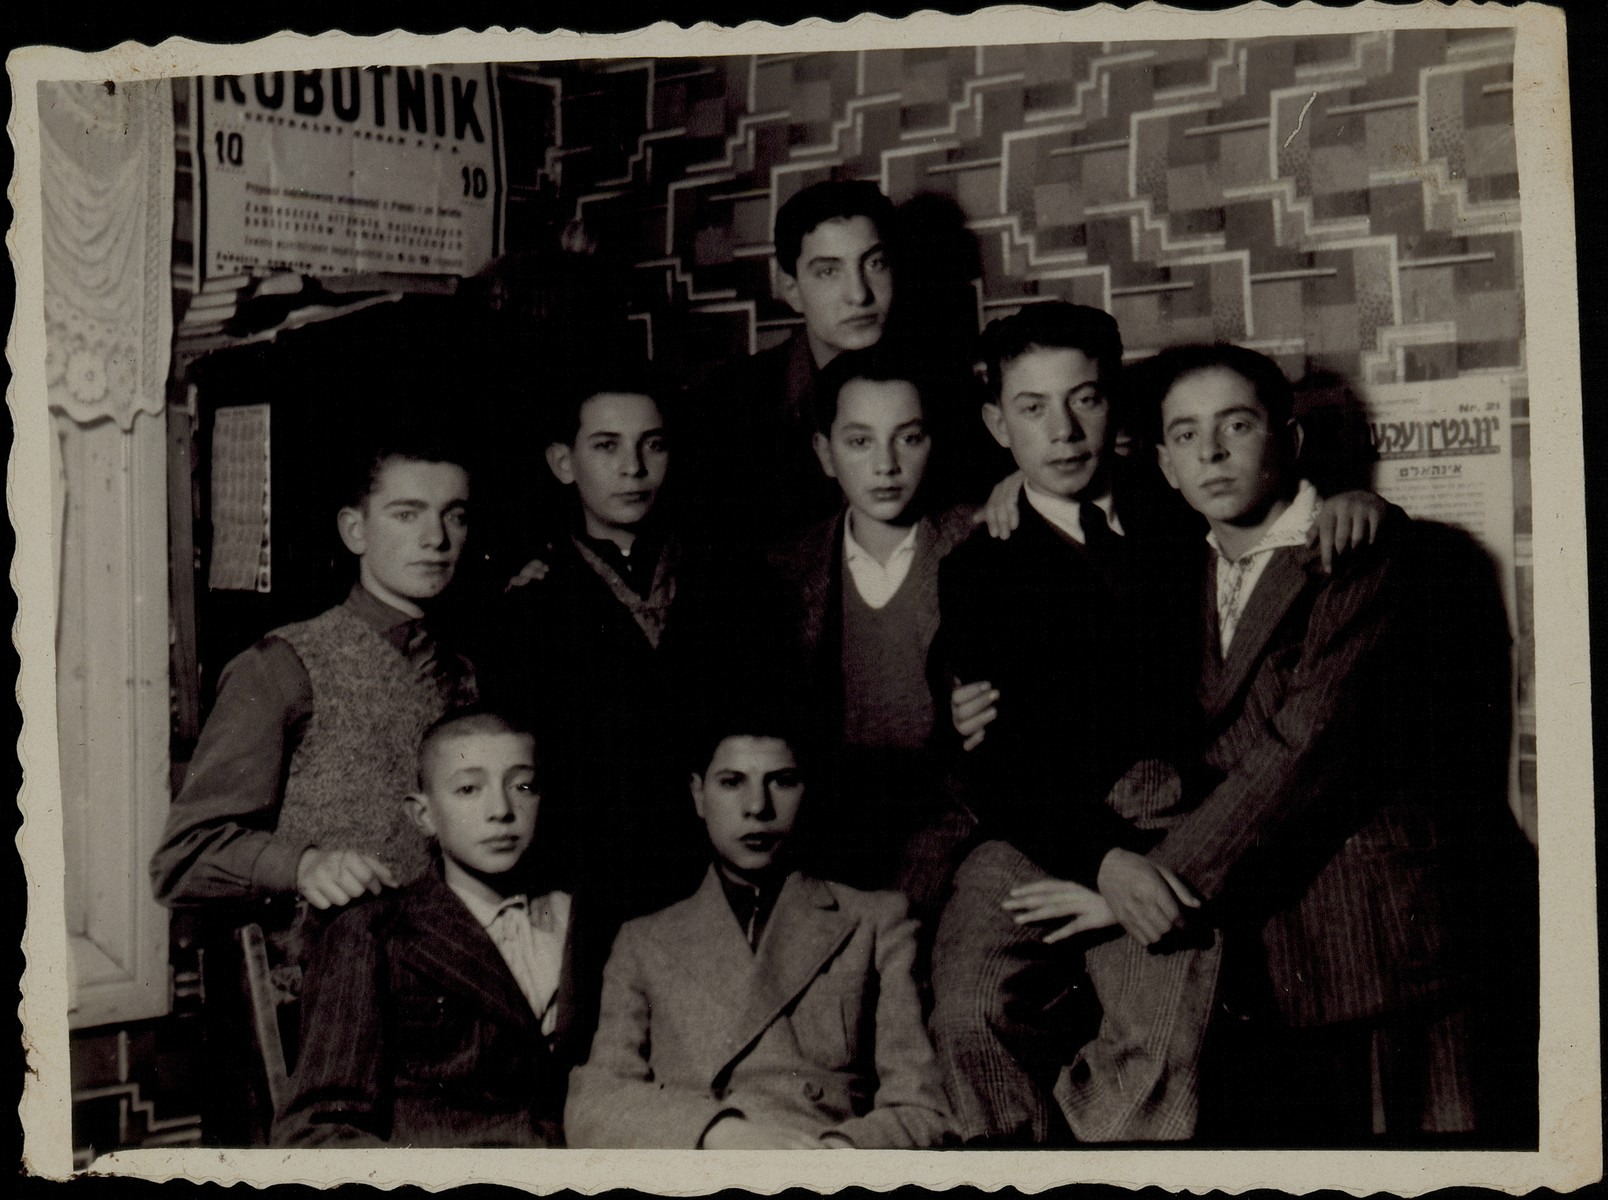 A group of teenage boys gather in a room in front of  posters tacked to the wall.  Sitting from right to left: Tuvia Blacher and Bezalel Charney.  Middle row from right to left: Moshe Ginunski, Fischl Shlanski, unknown, Benjamin Shlanski, unknown.  Zalman Zubizki is on top.    The Shlanski brothers imigrated to America. All the other boys in the photo were murdered in the September 1941 massacre.